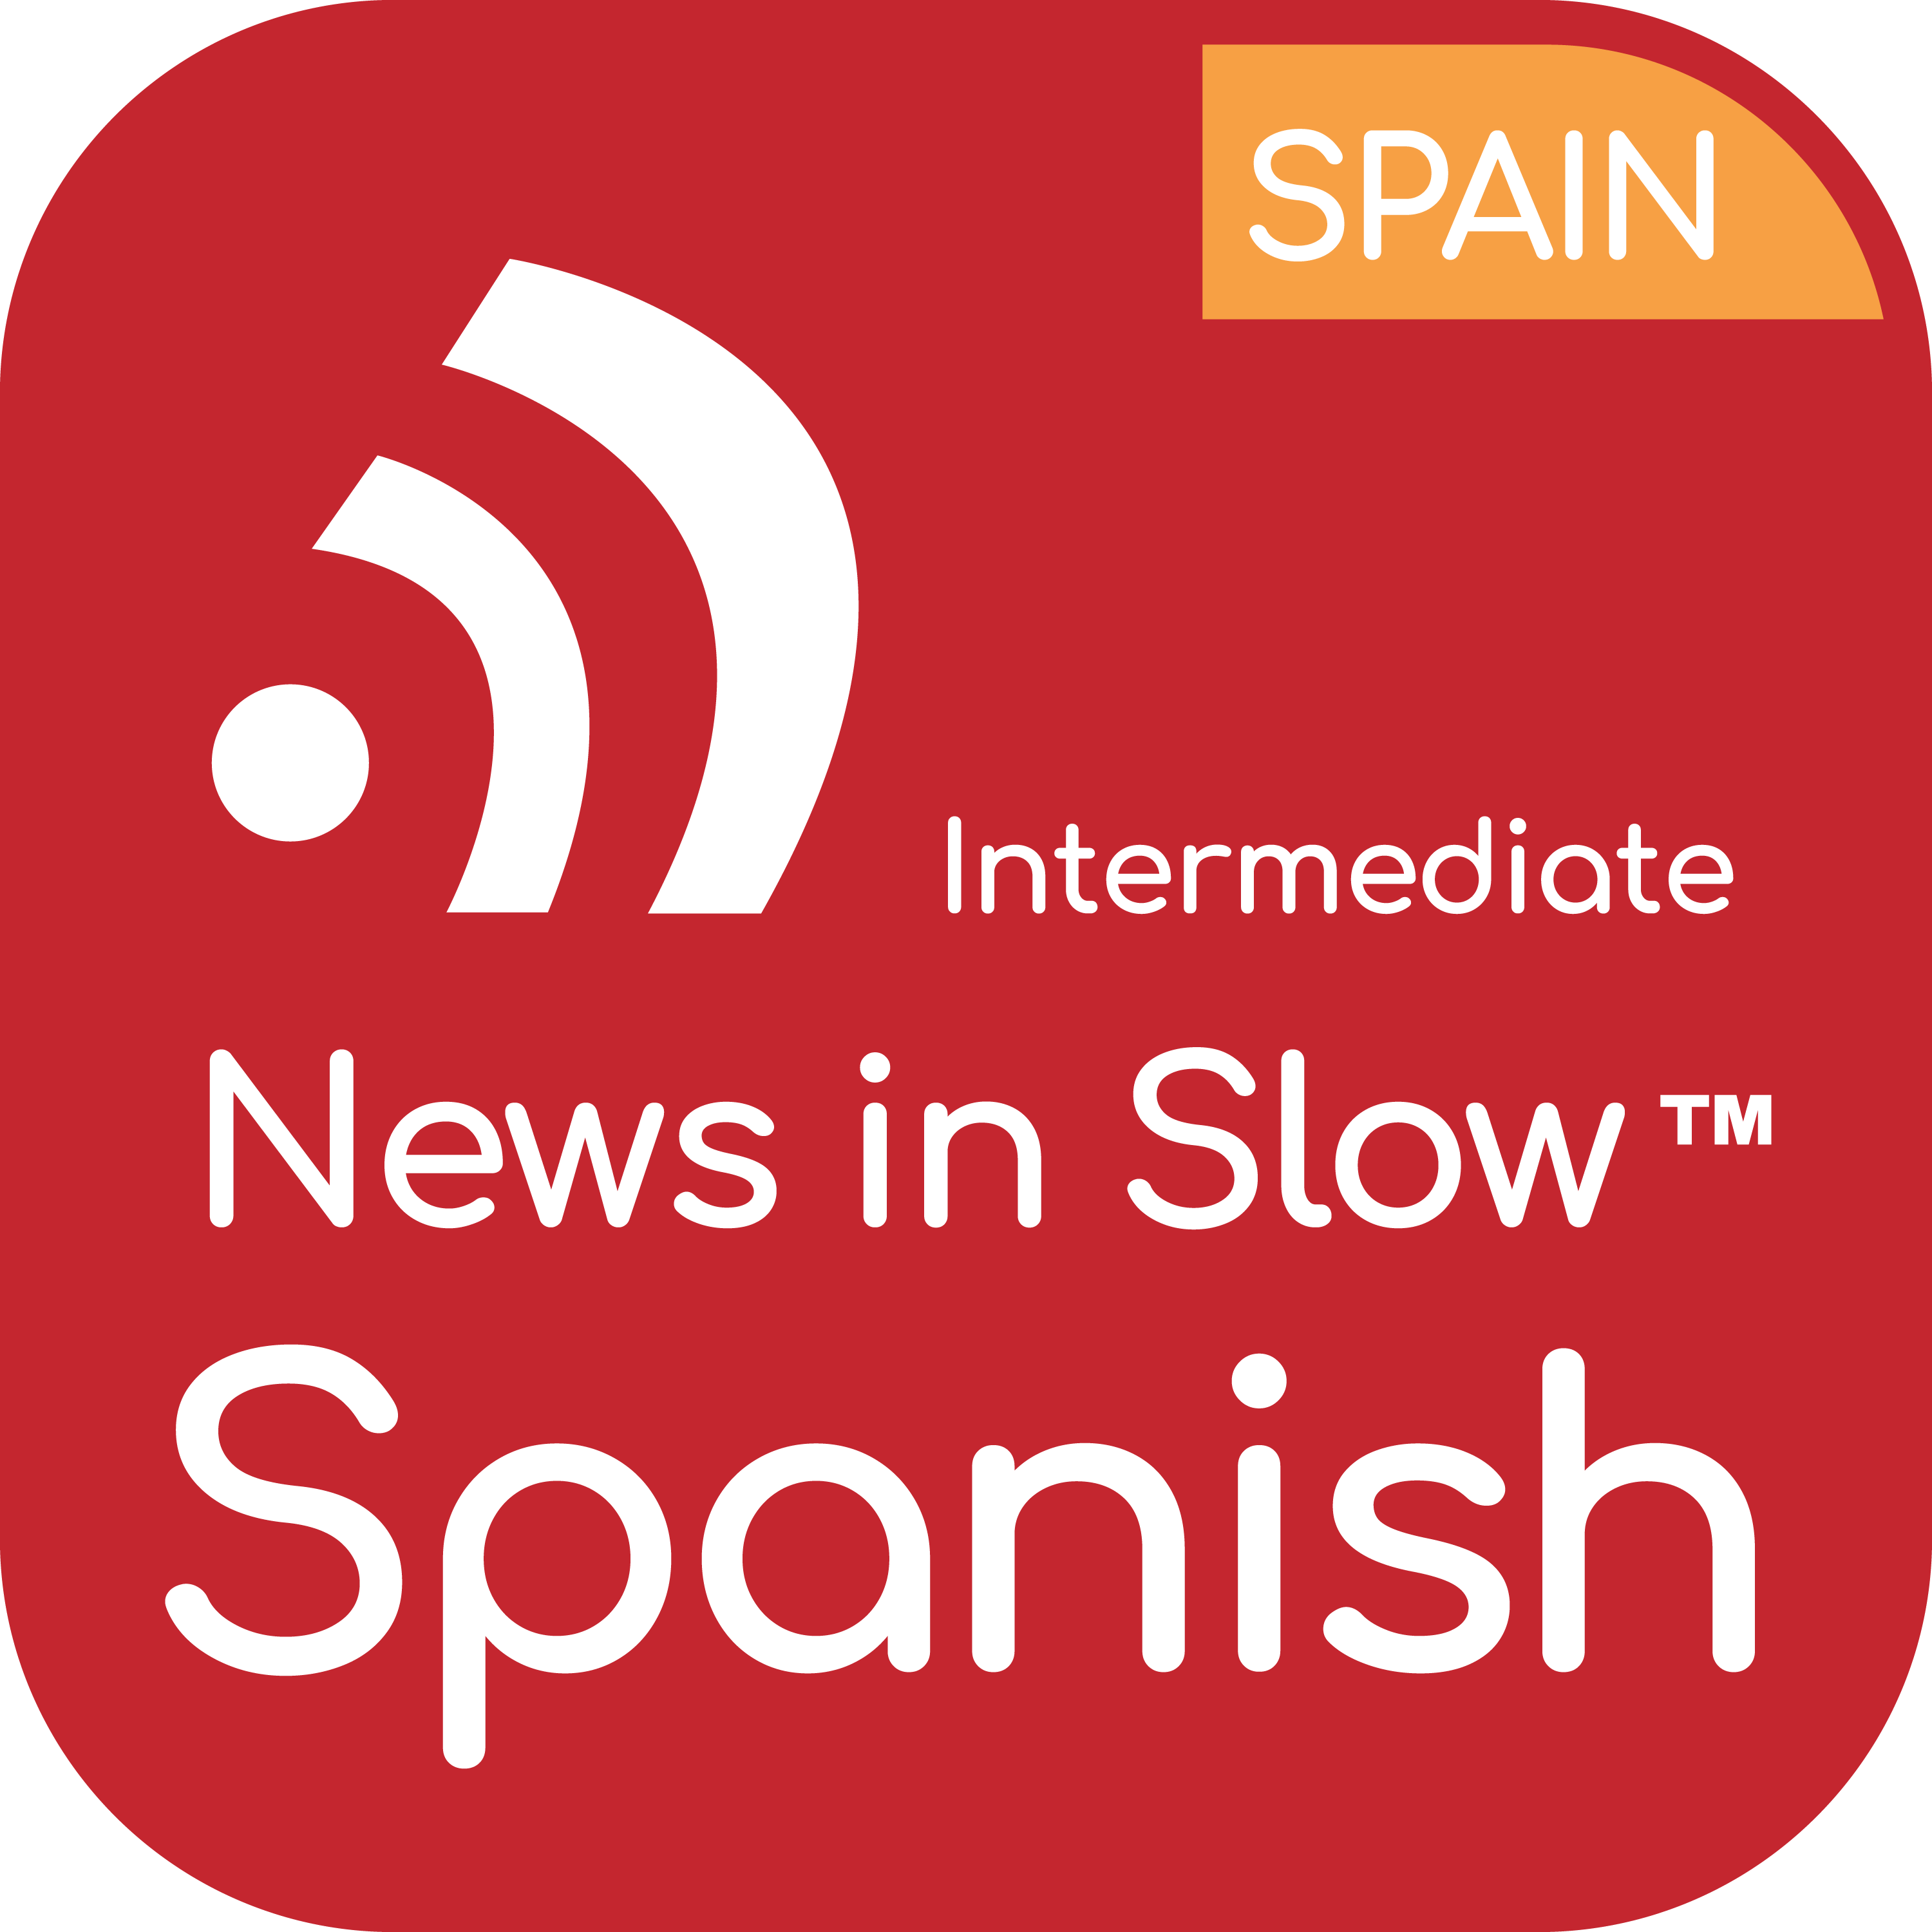 News in Slow Spanish - #623 - Learn Spanish through Current Events